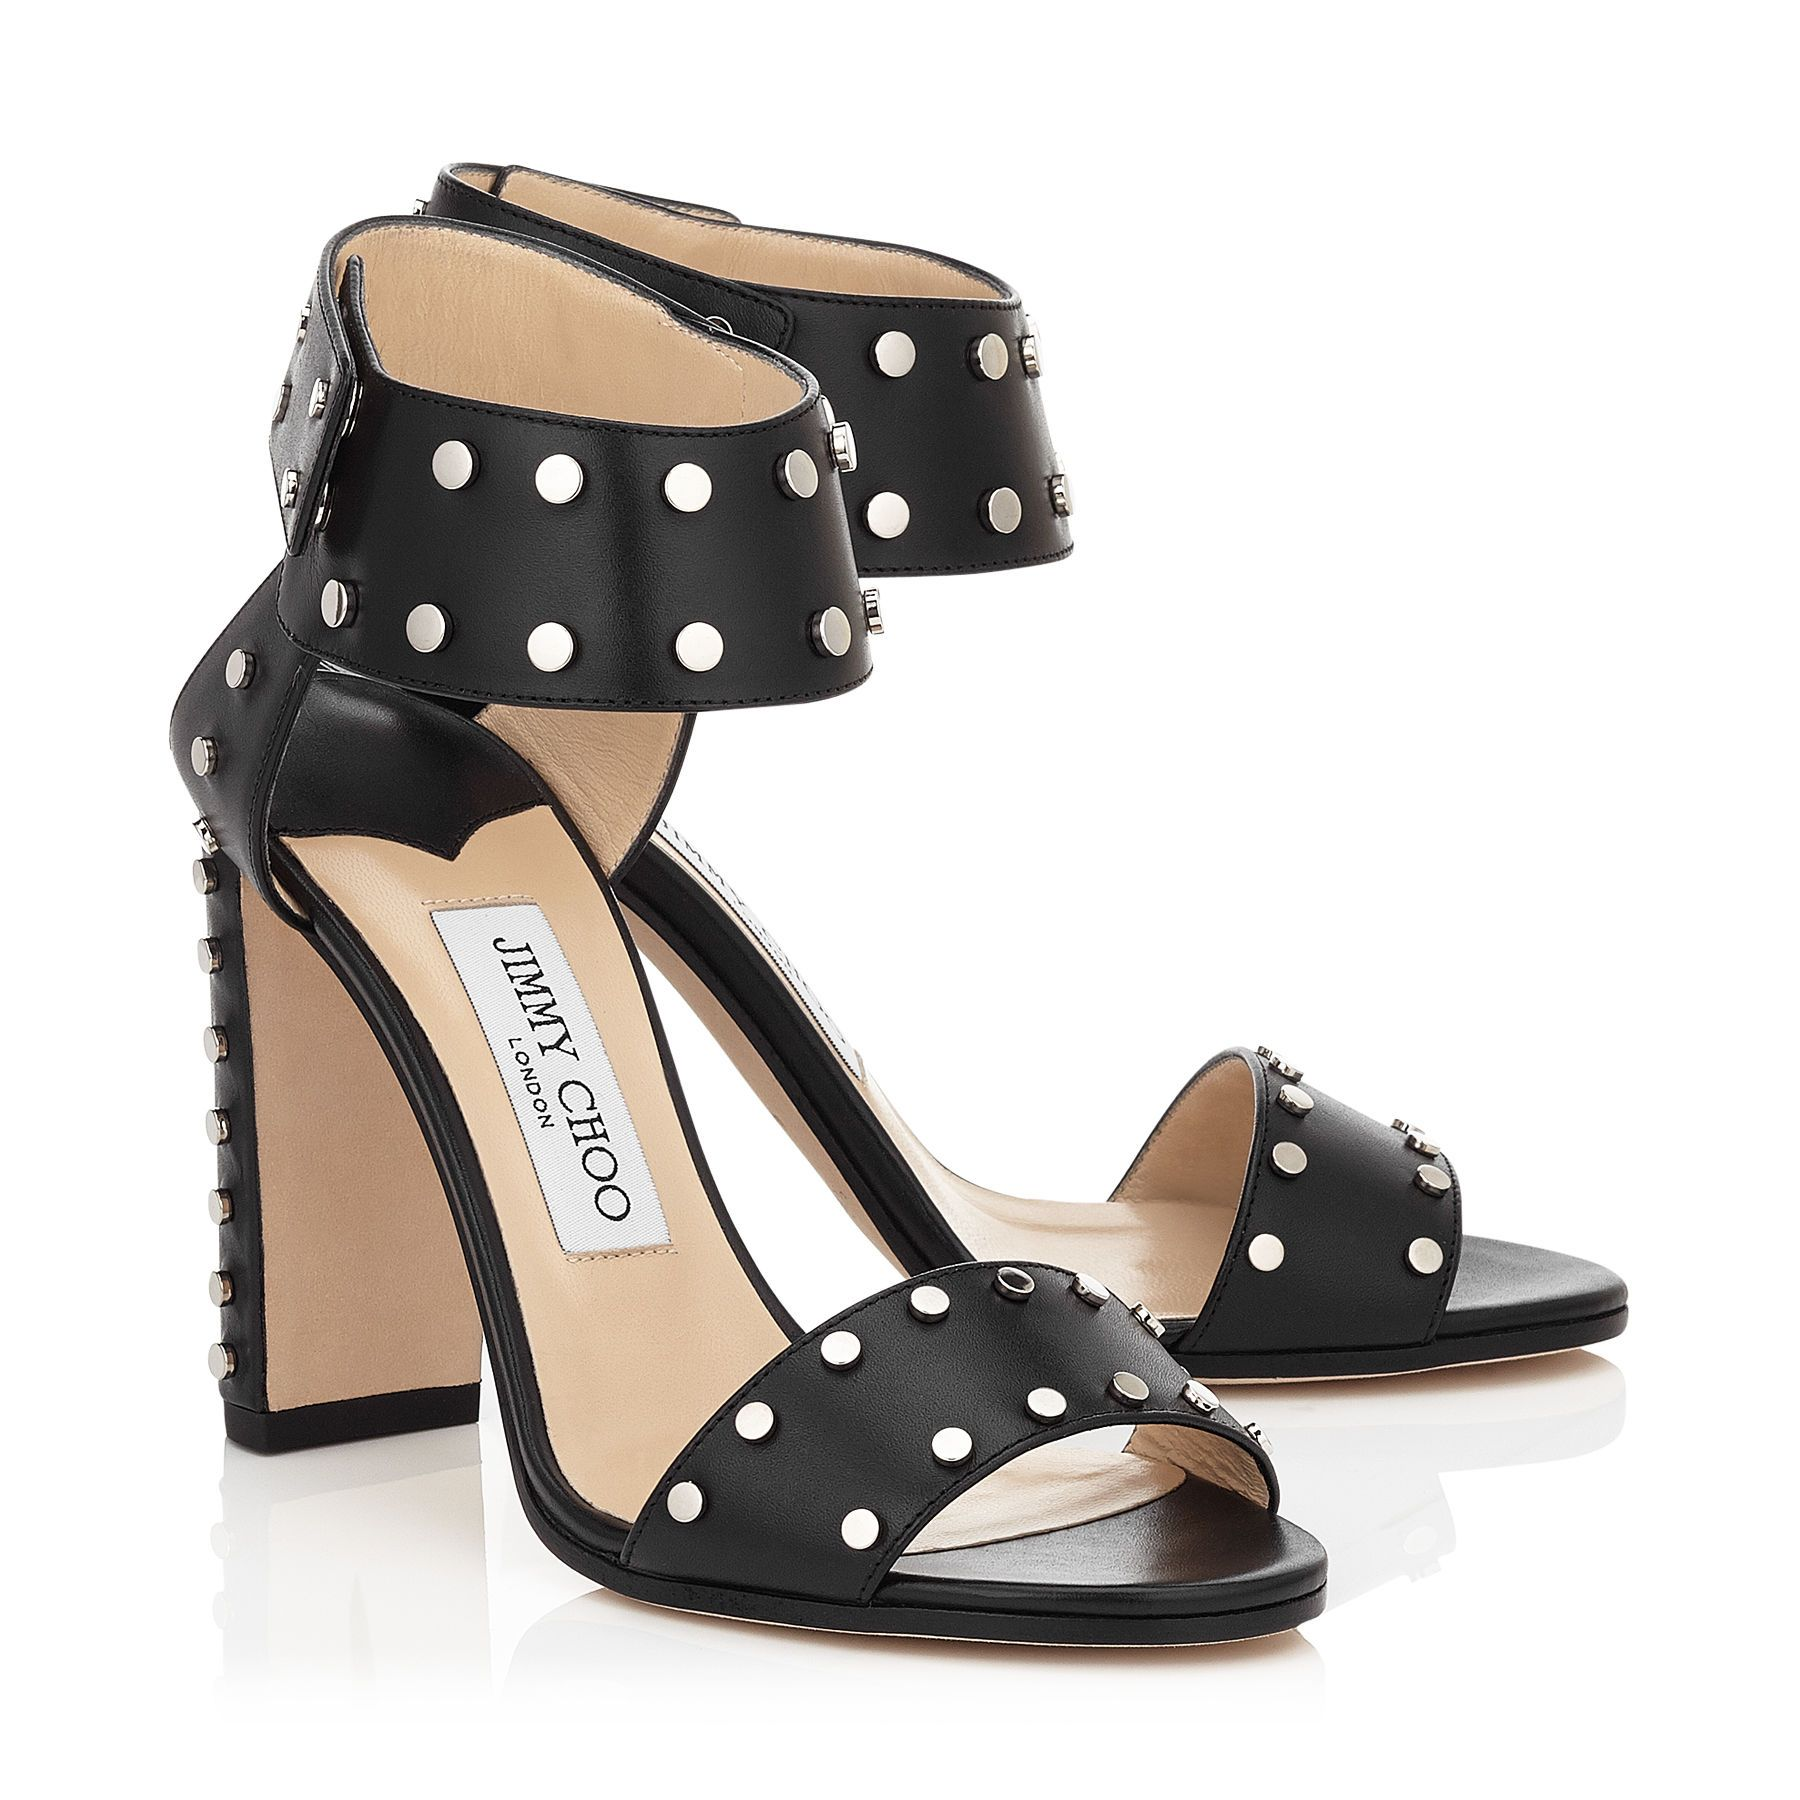 Veto 100 Sandals in Black Shiny Leather with Silver Studs. Discover our Pre  Fall 16 Collection and shop the latest trends today.